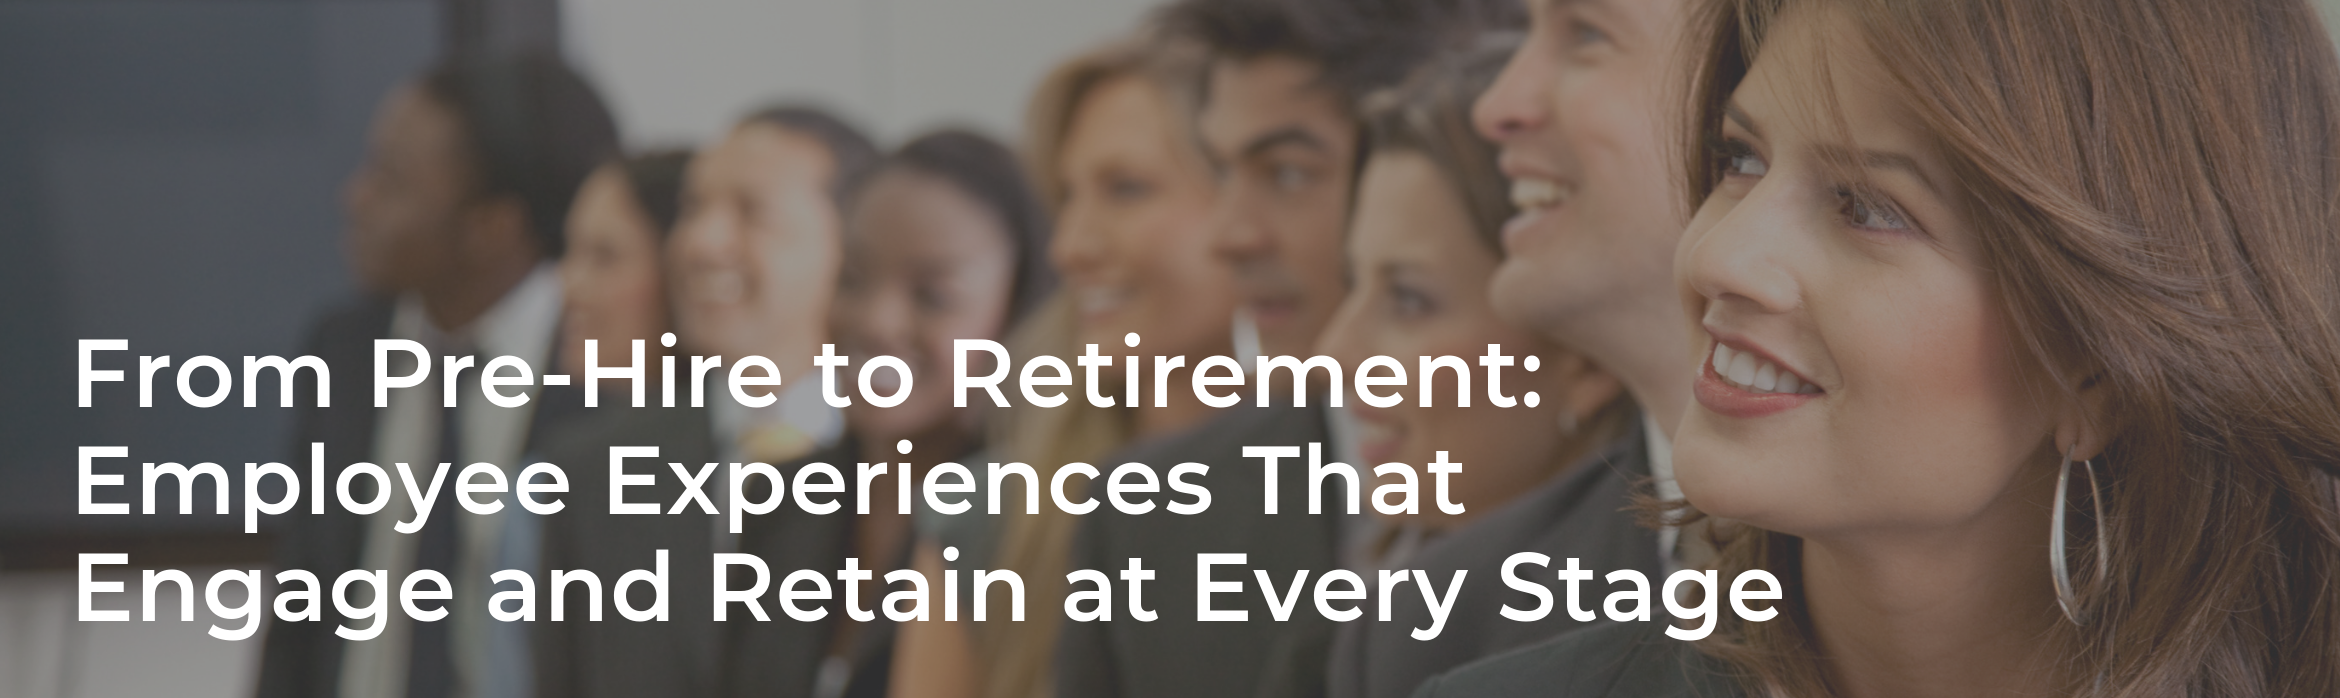 From Pre-Hire to Retirement: Employee Experiences That Engage and Retain at Every Stage